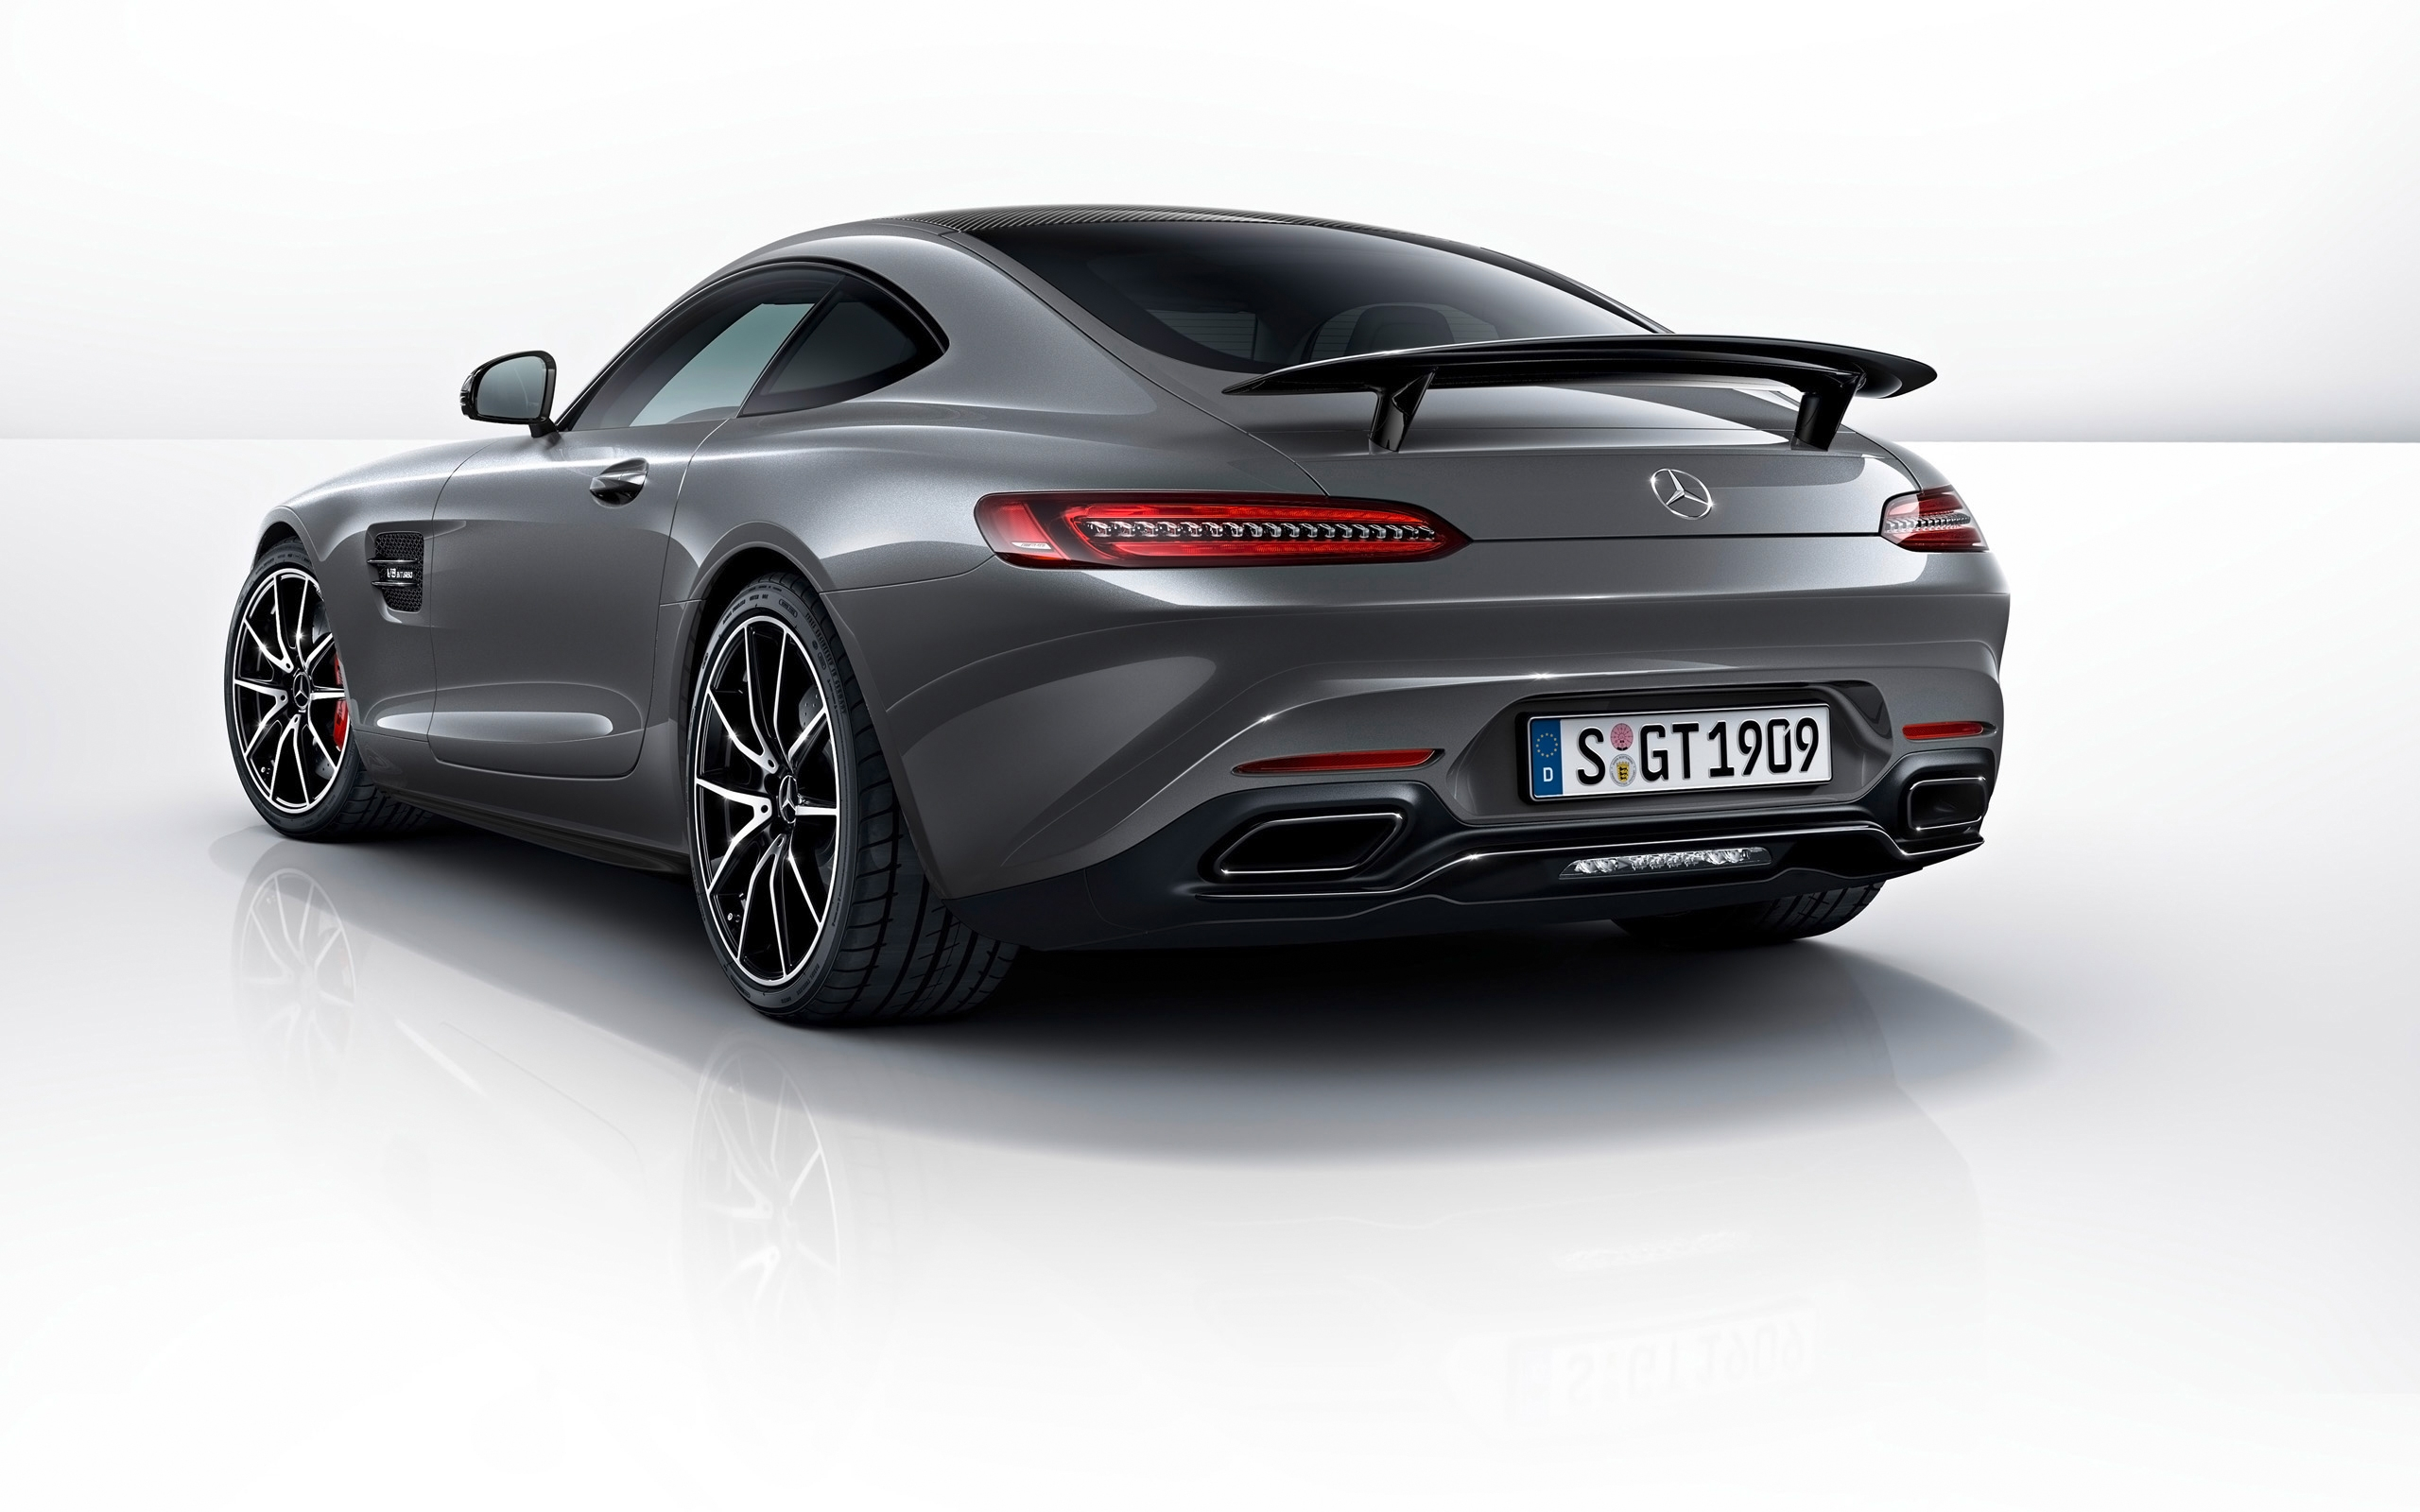 2015 mercedes amg gt s edition rear view wallpaper 47561